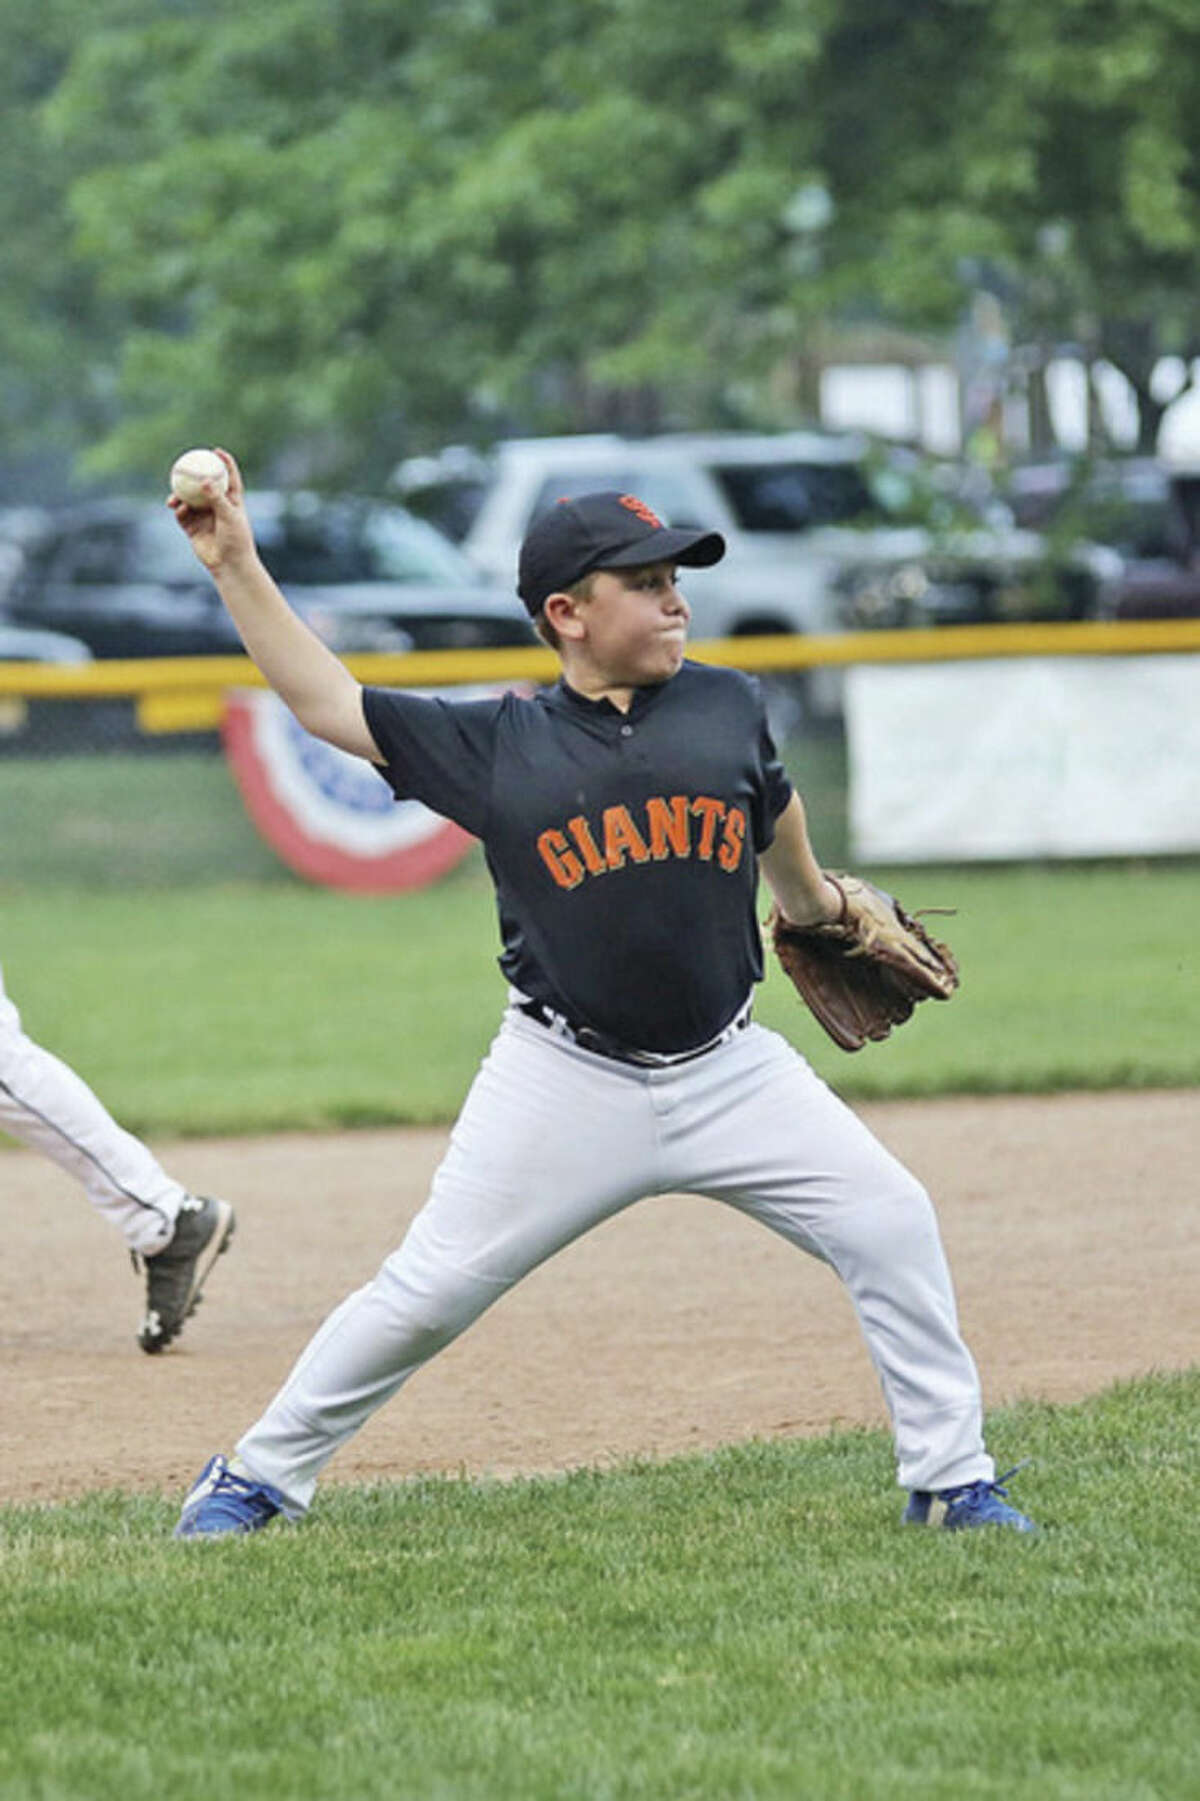 Hour photo/Danielle Calloway Mickey Wilcox of the Giants makes a play at third base during the Wilton Little League Majors Division Championship game against the Astros Thursday evening at Bill Terry Field in Wilton.